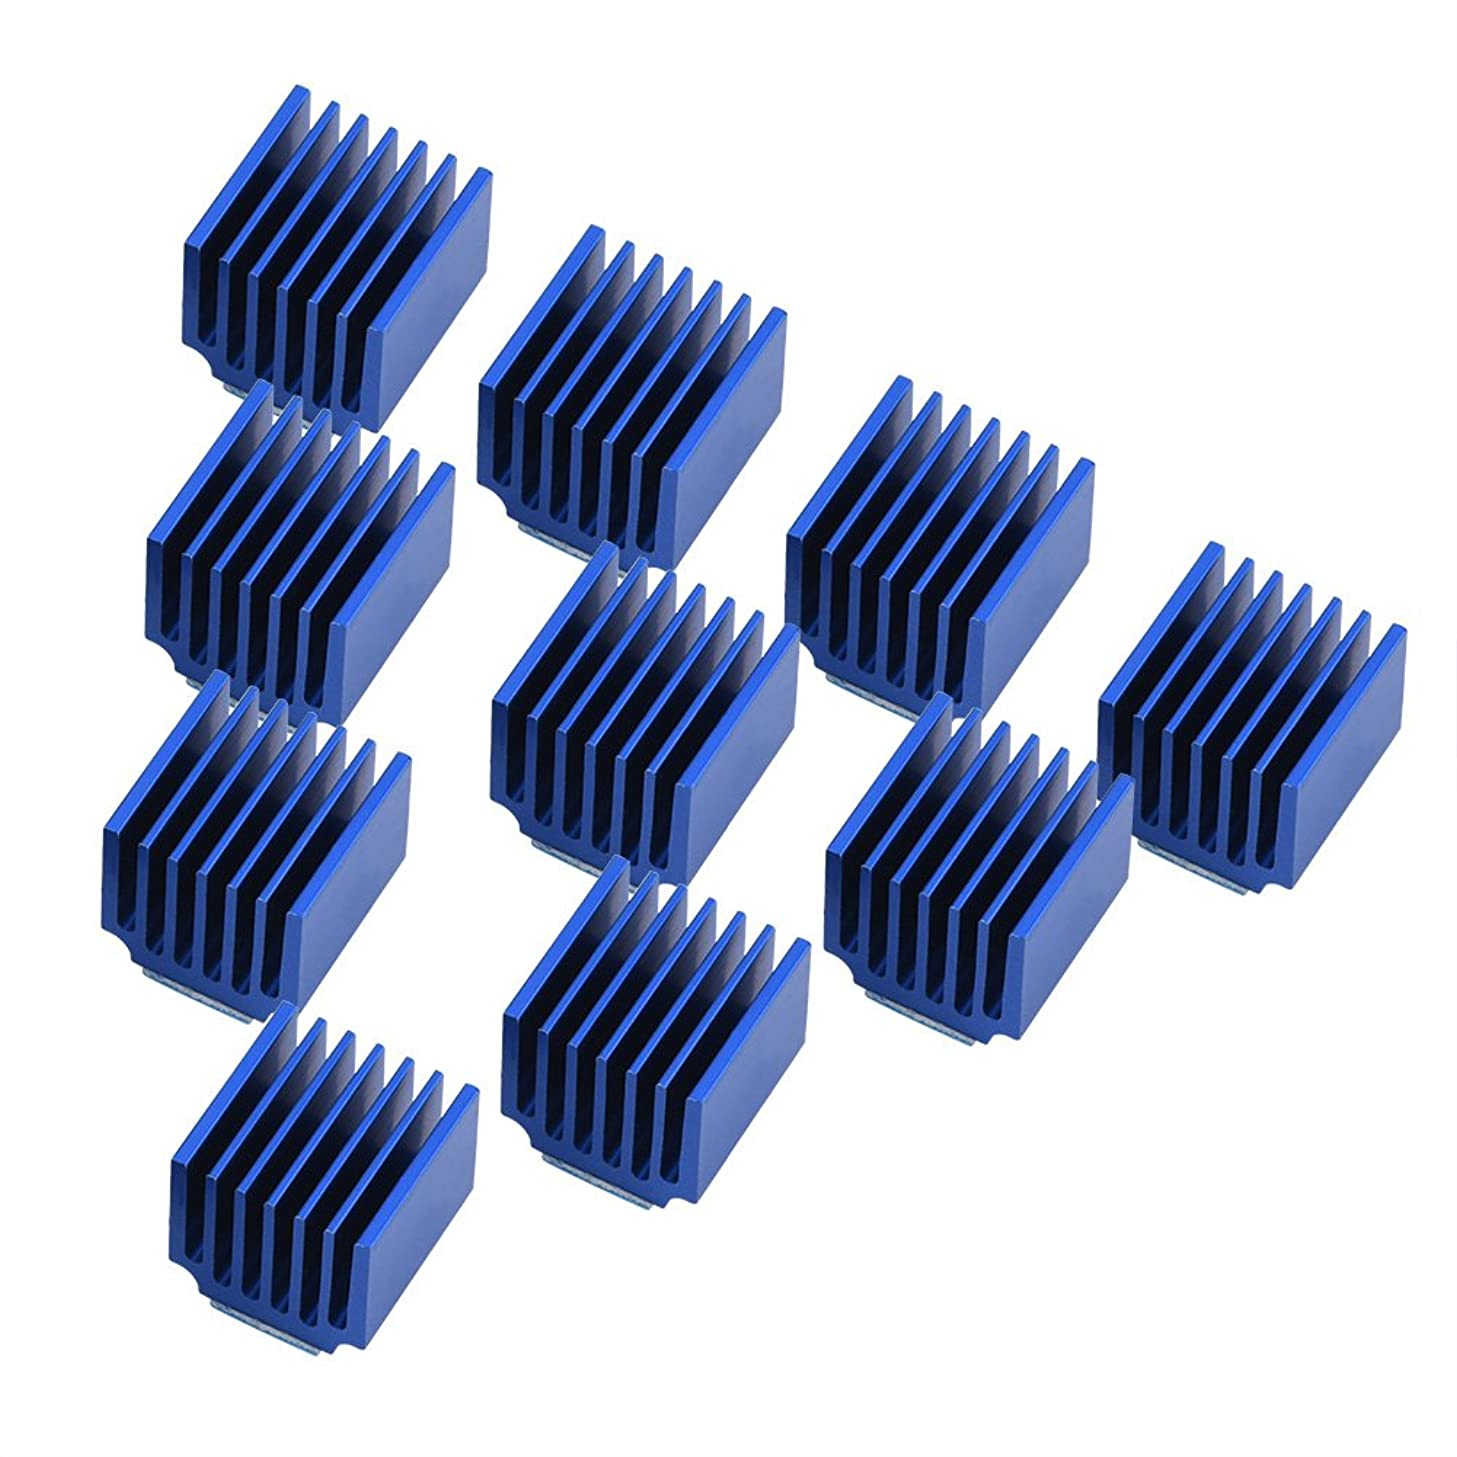 ASHATA 10 Pcs Heat Sink with Adhesive for Stepper Motor Driver, Aluminum Cooling Fin with Back Glue for 3D Printer DIY Tools Replacement Component